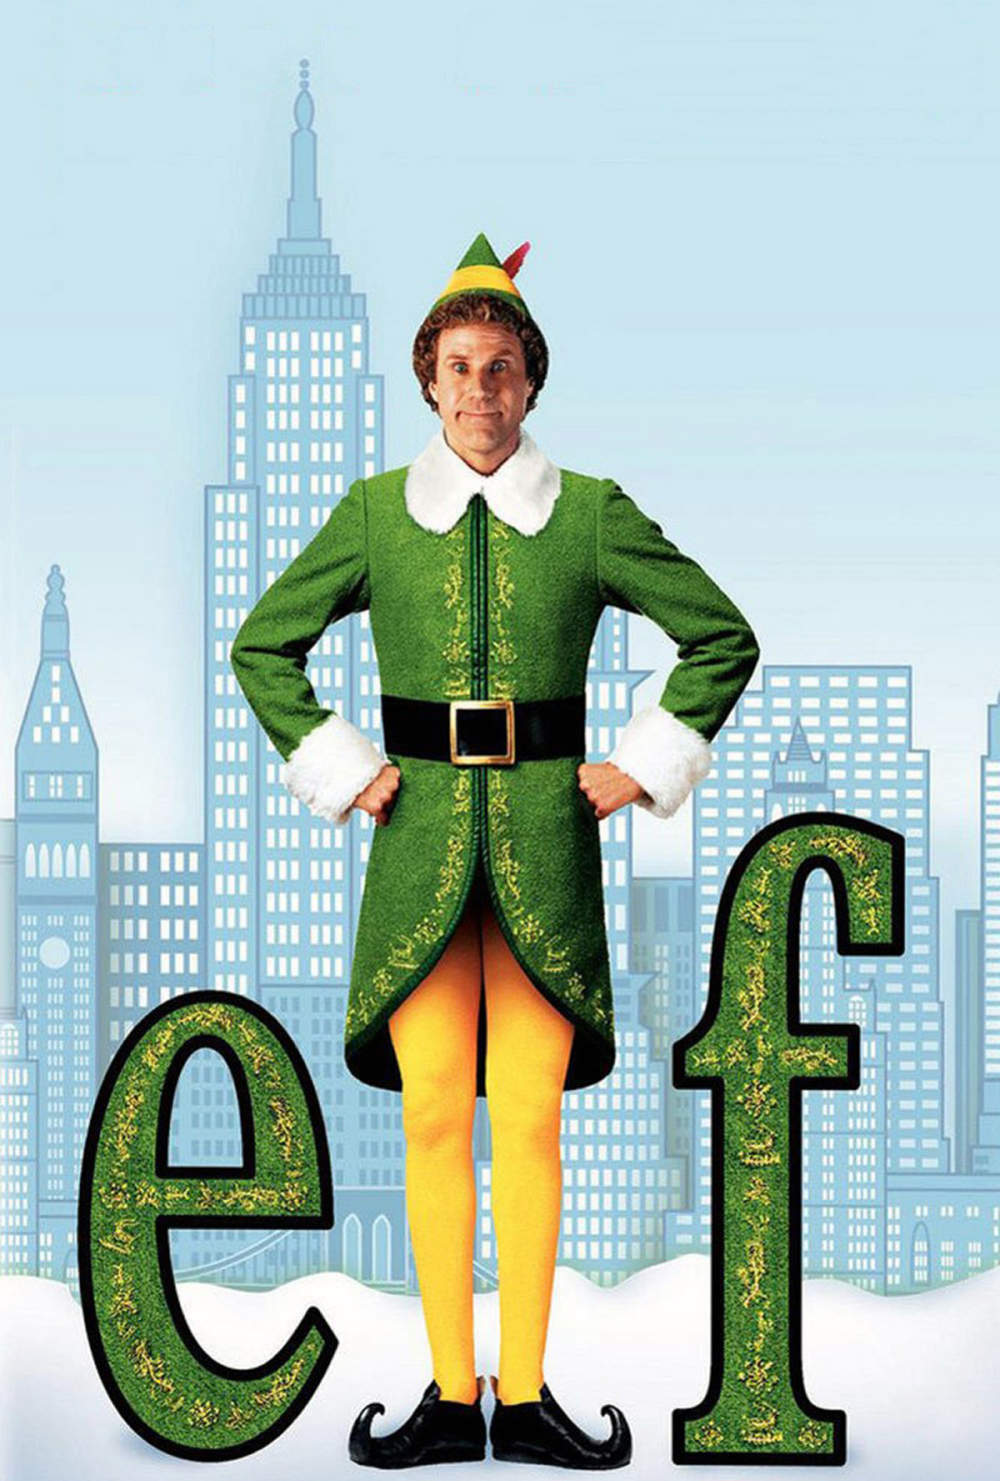 Best-Family-Holiday-Movies-Elf.jpg